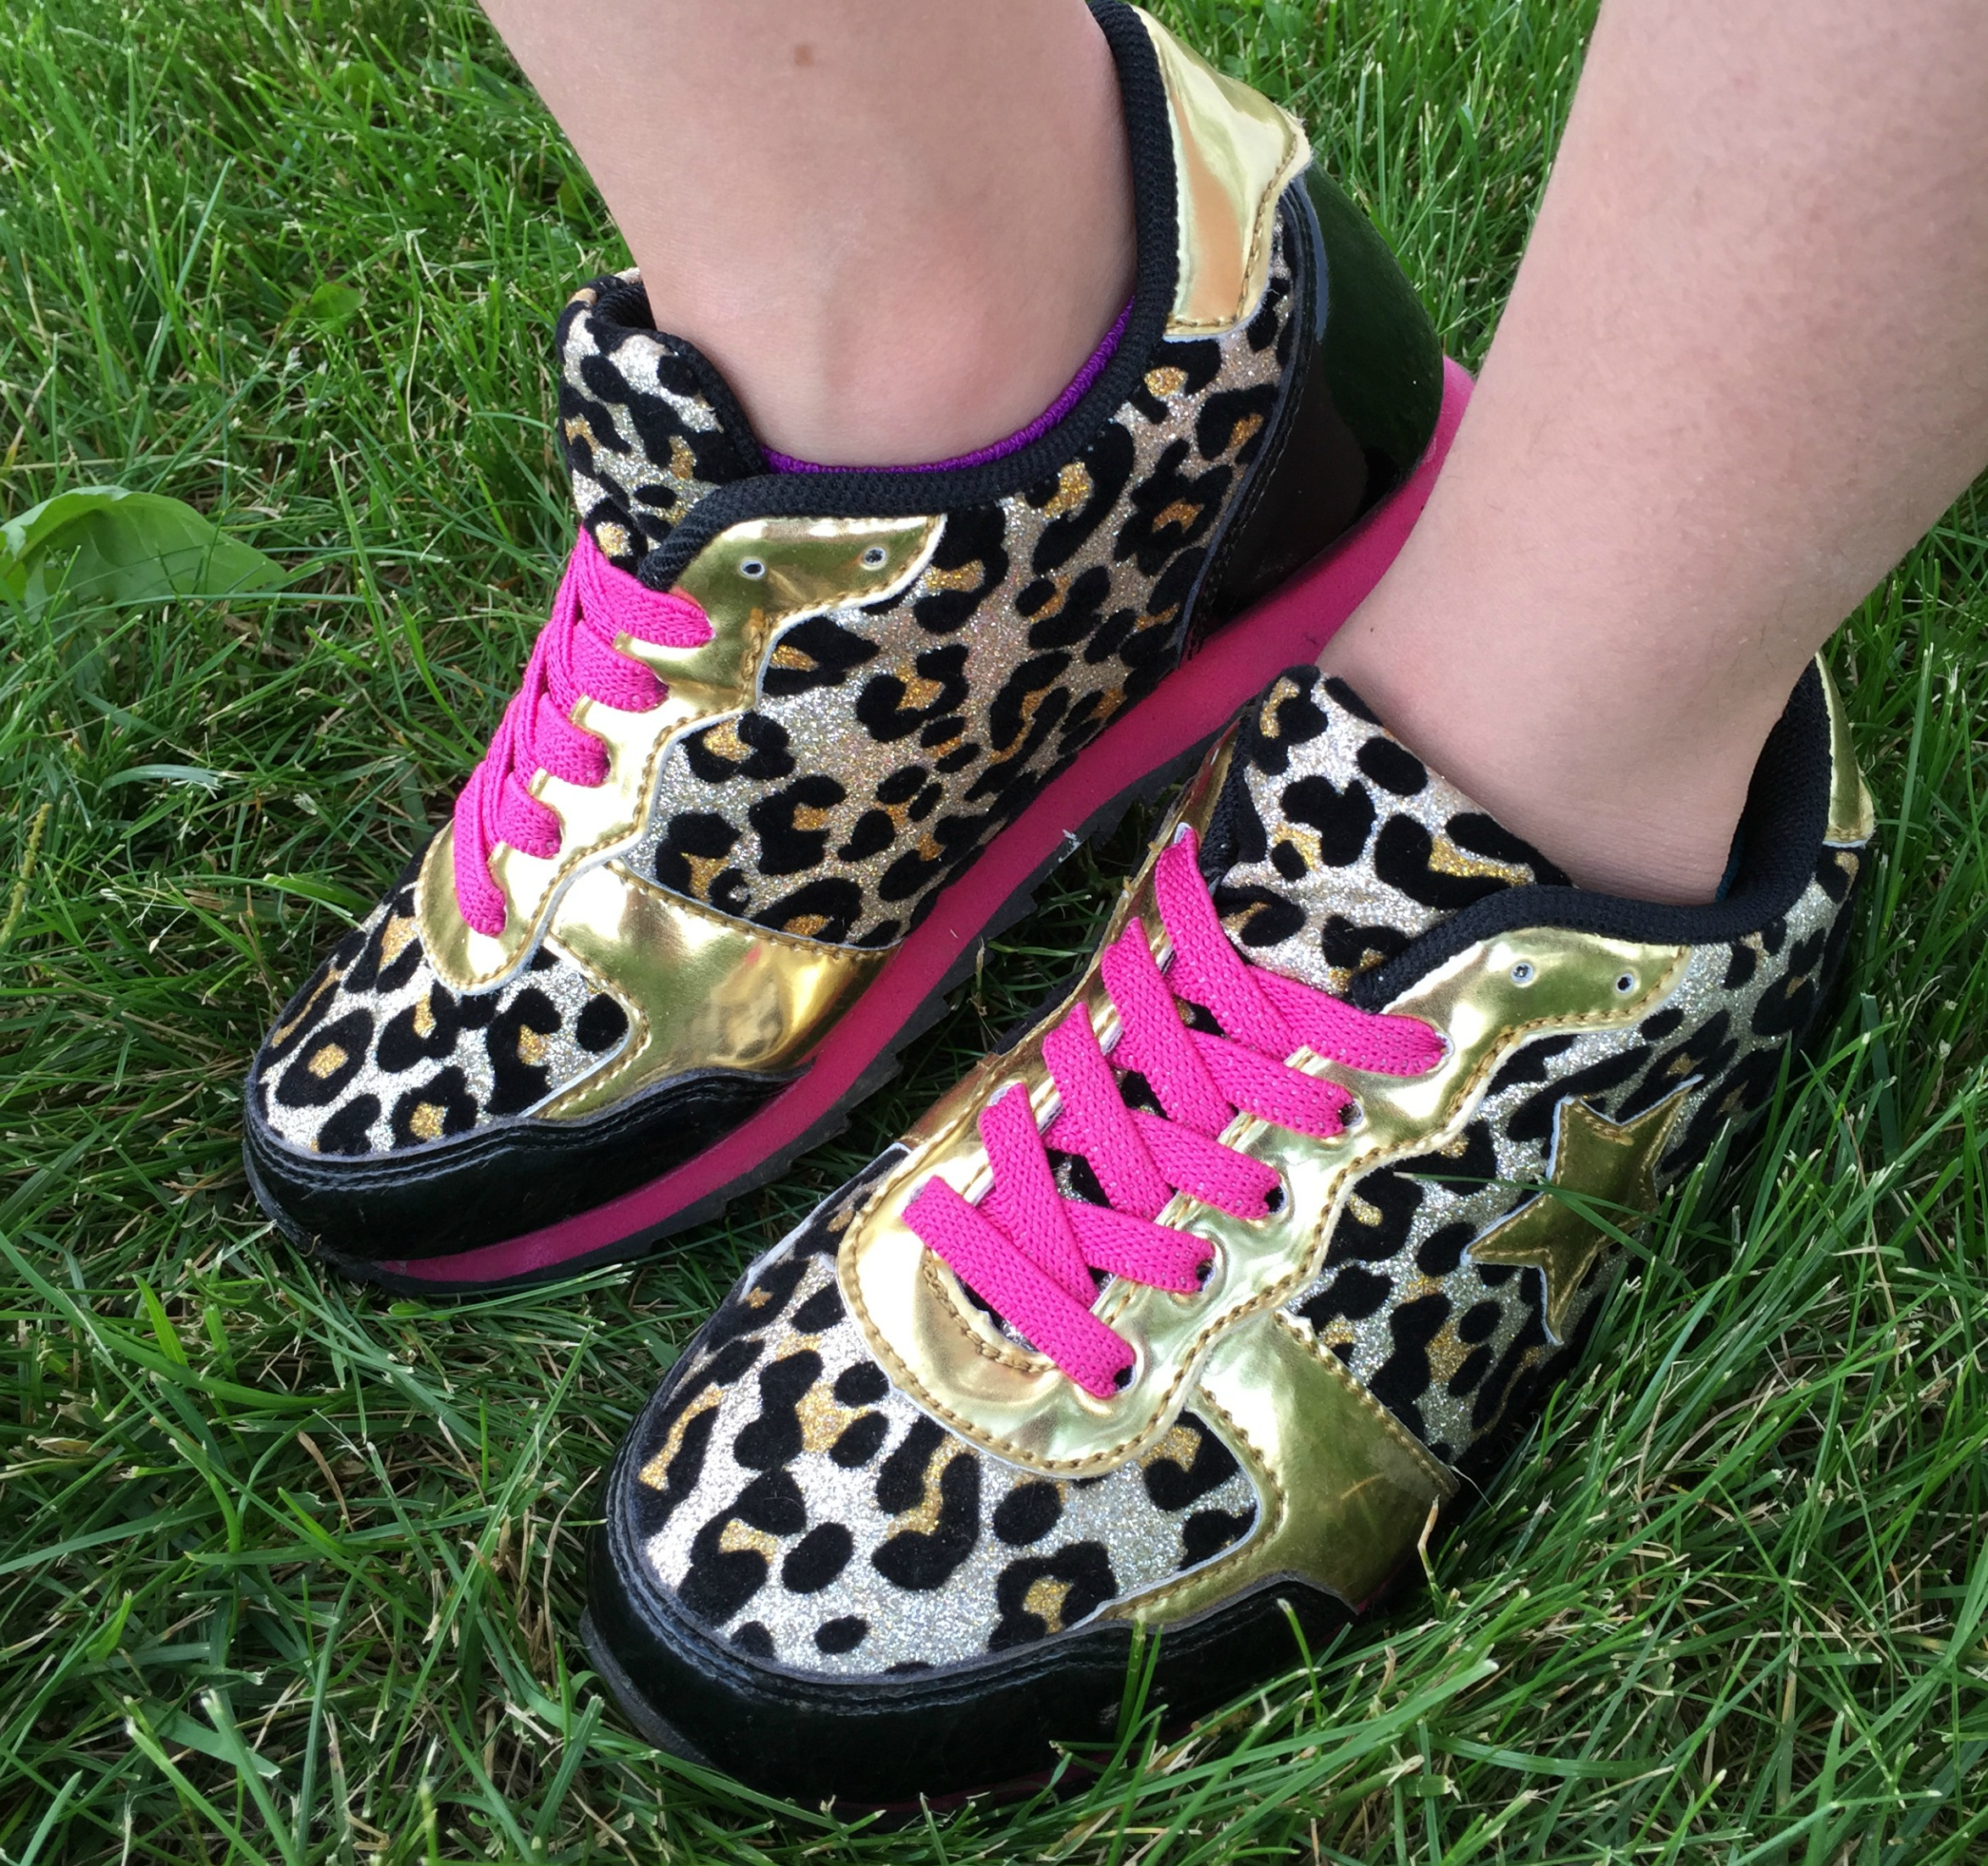 981f3f72665 Speaking of shoes – this girl loves them and you can tell she s an animal  print lover! These Fab Star Trainer shoes had her at hello – great for the  active ...